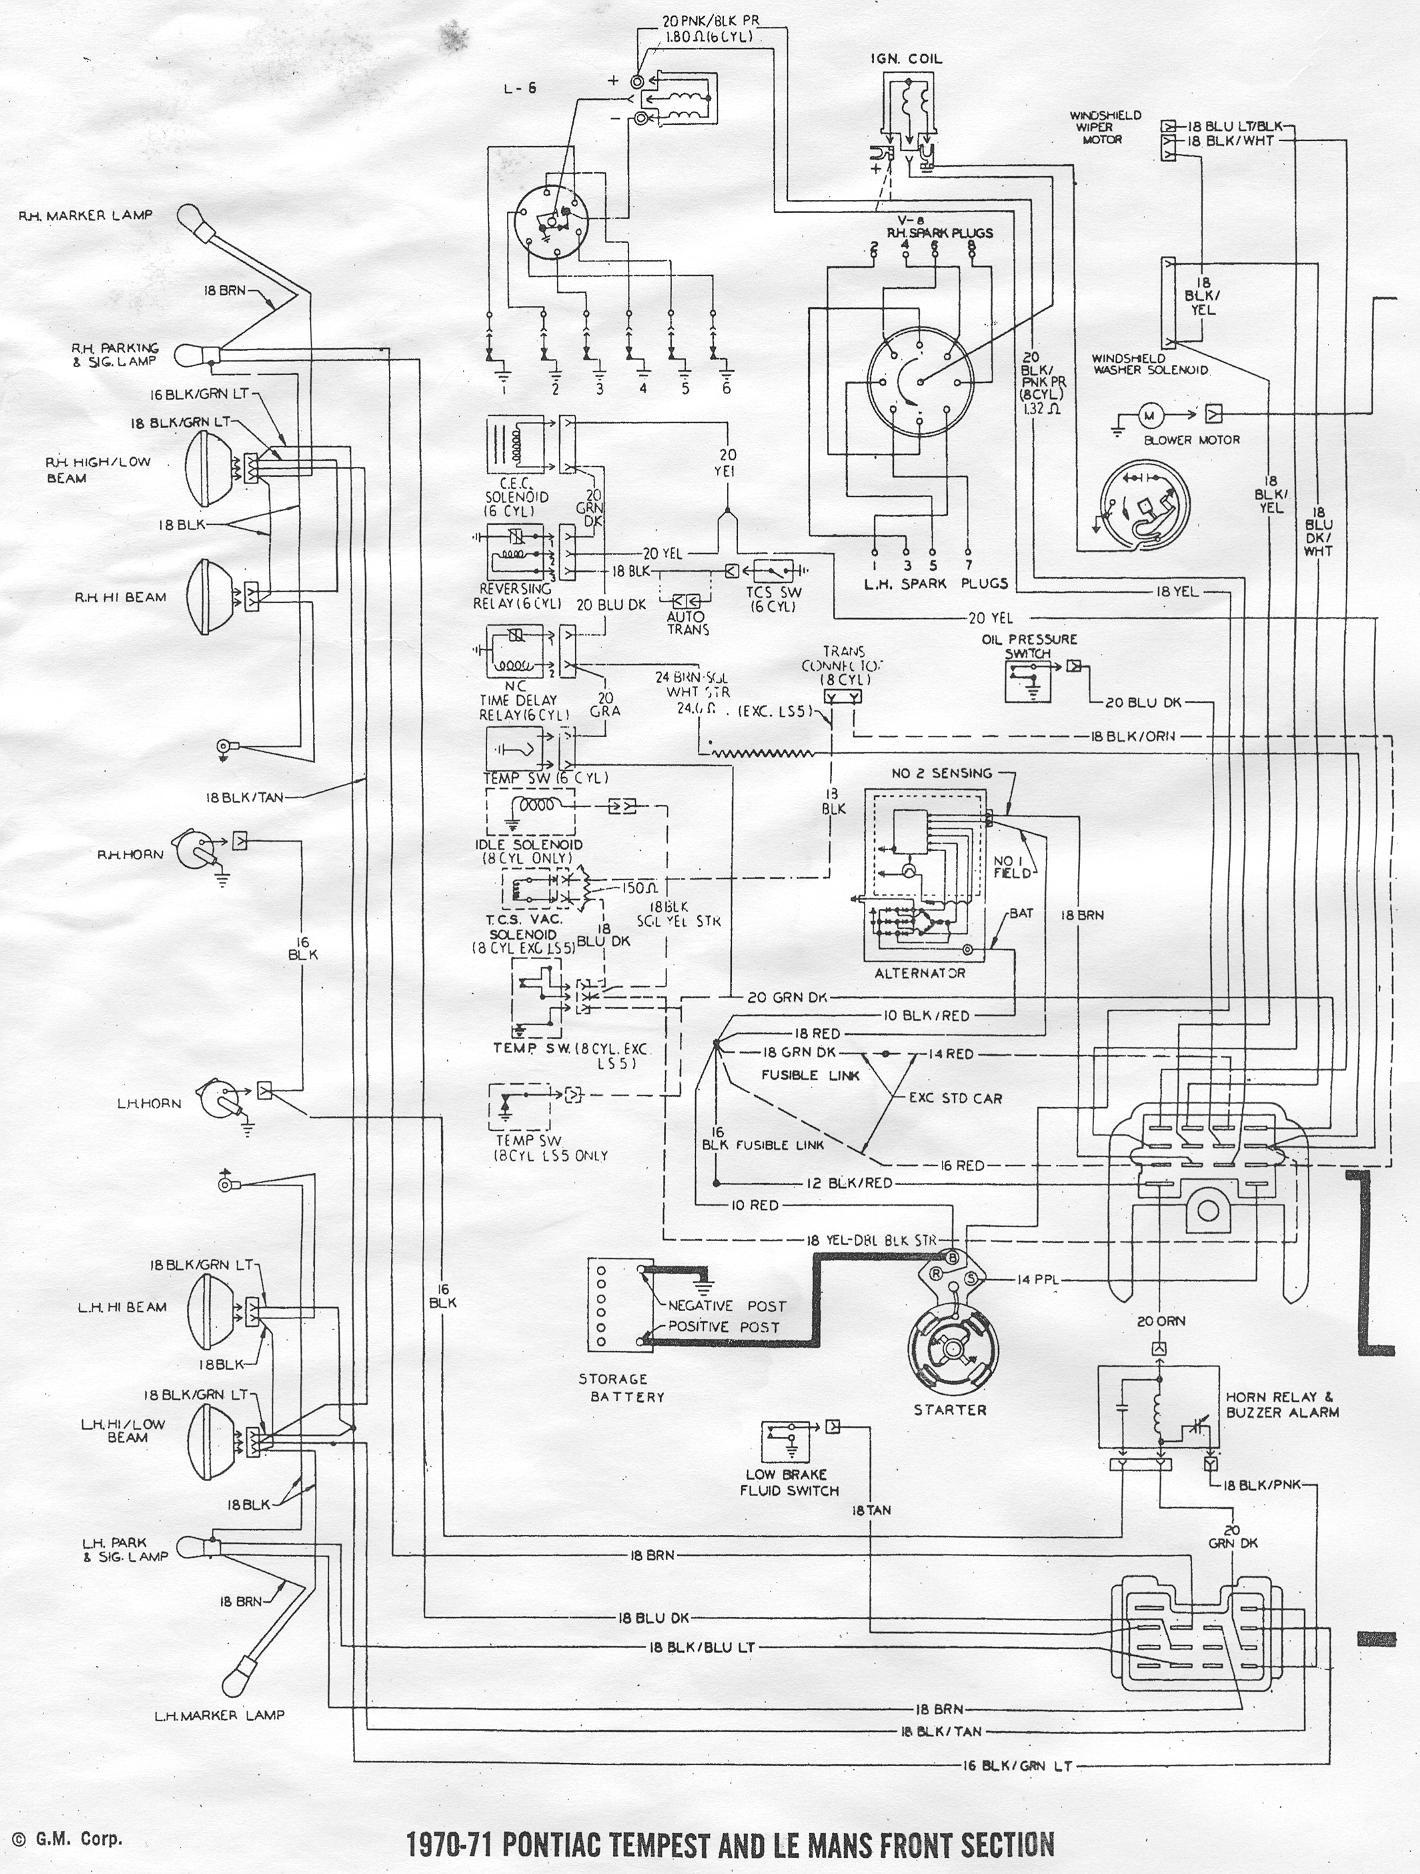 Horn Relay Wiring Diagram 71 Le Mans | Wiring Liry on